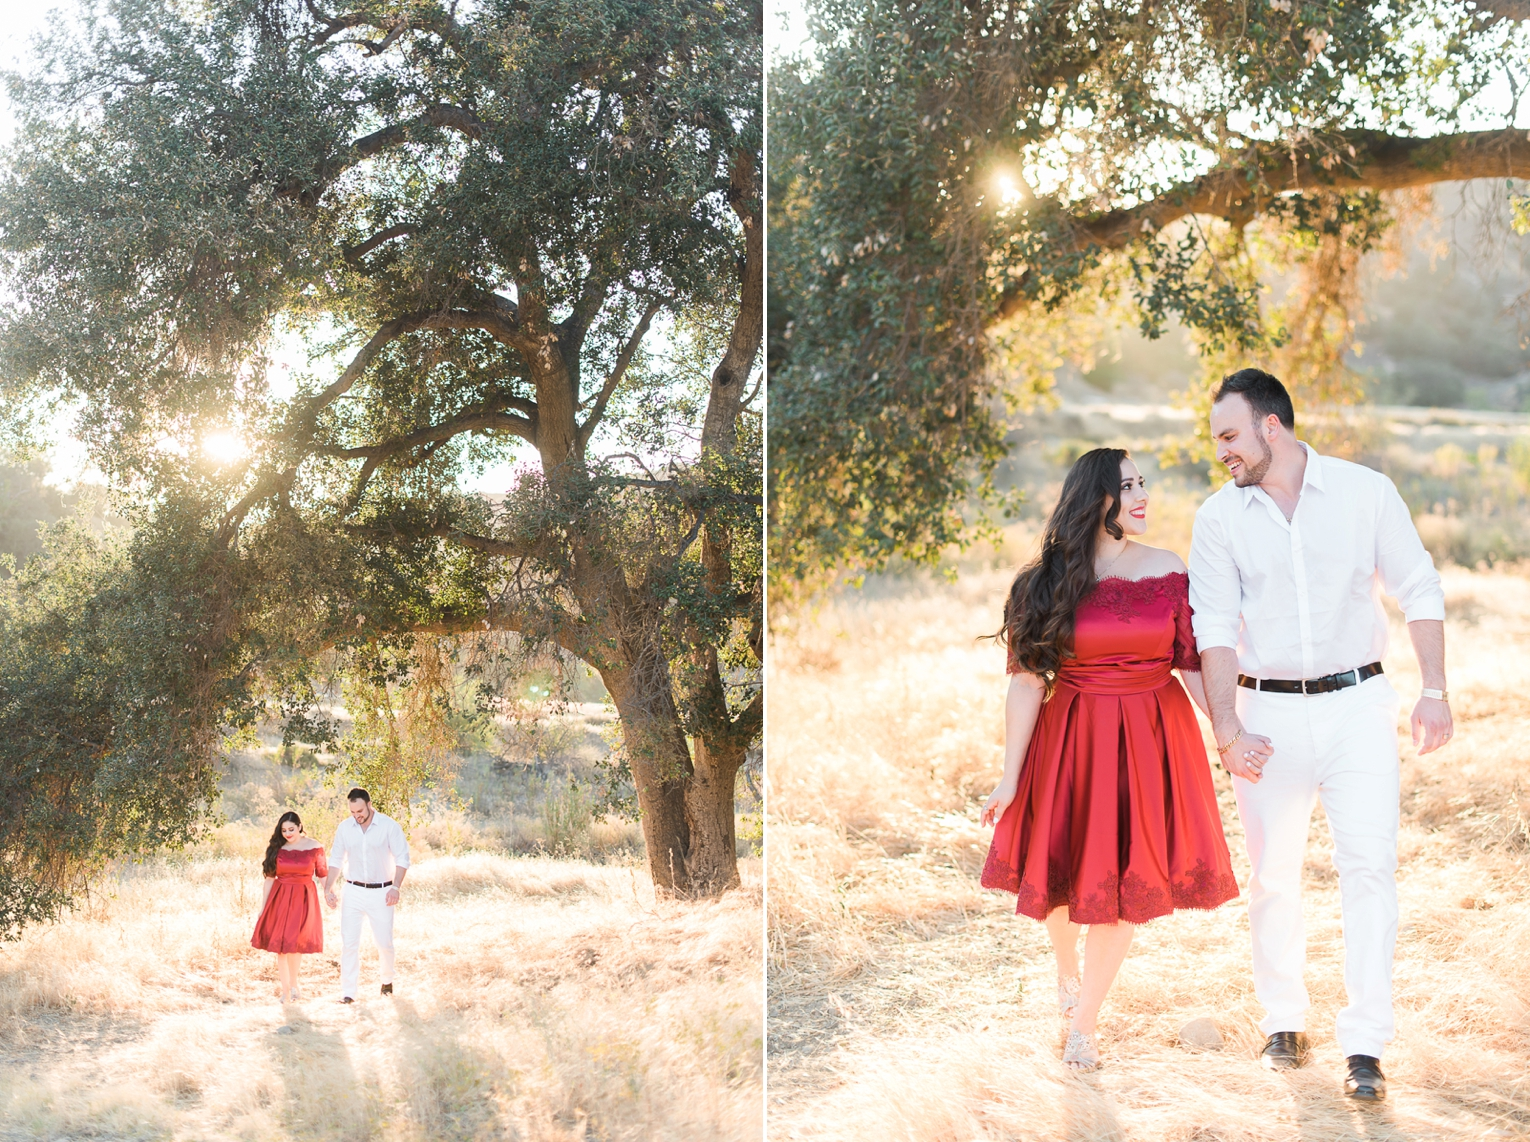 Malibu Engagement photos | Brandi Welles Photographer_0005